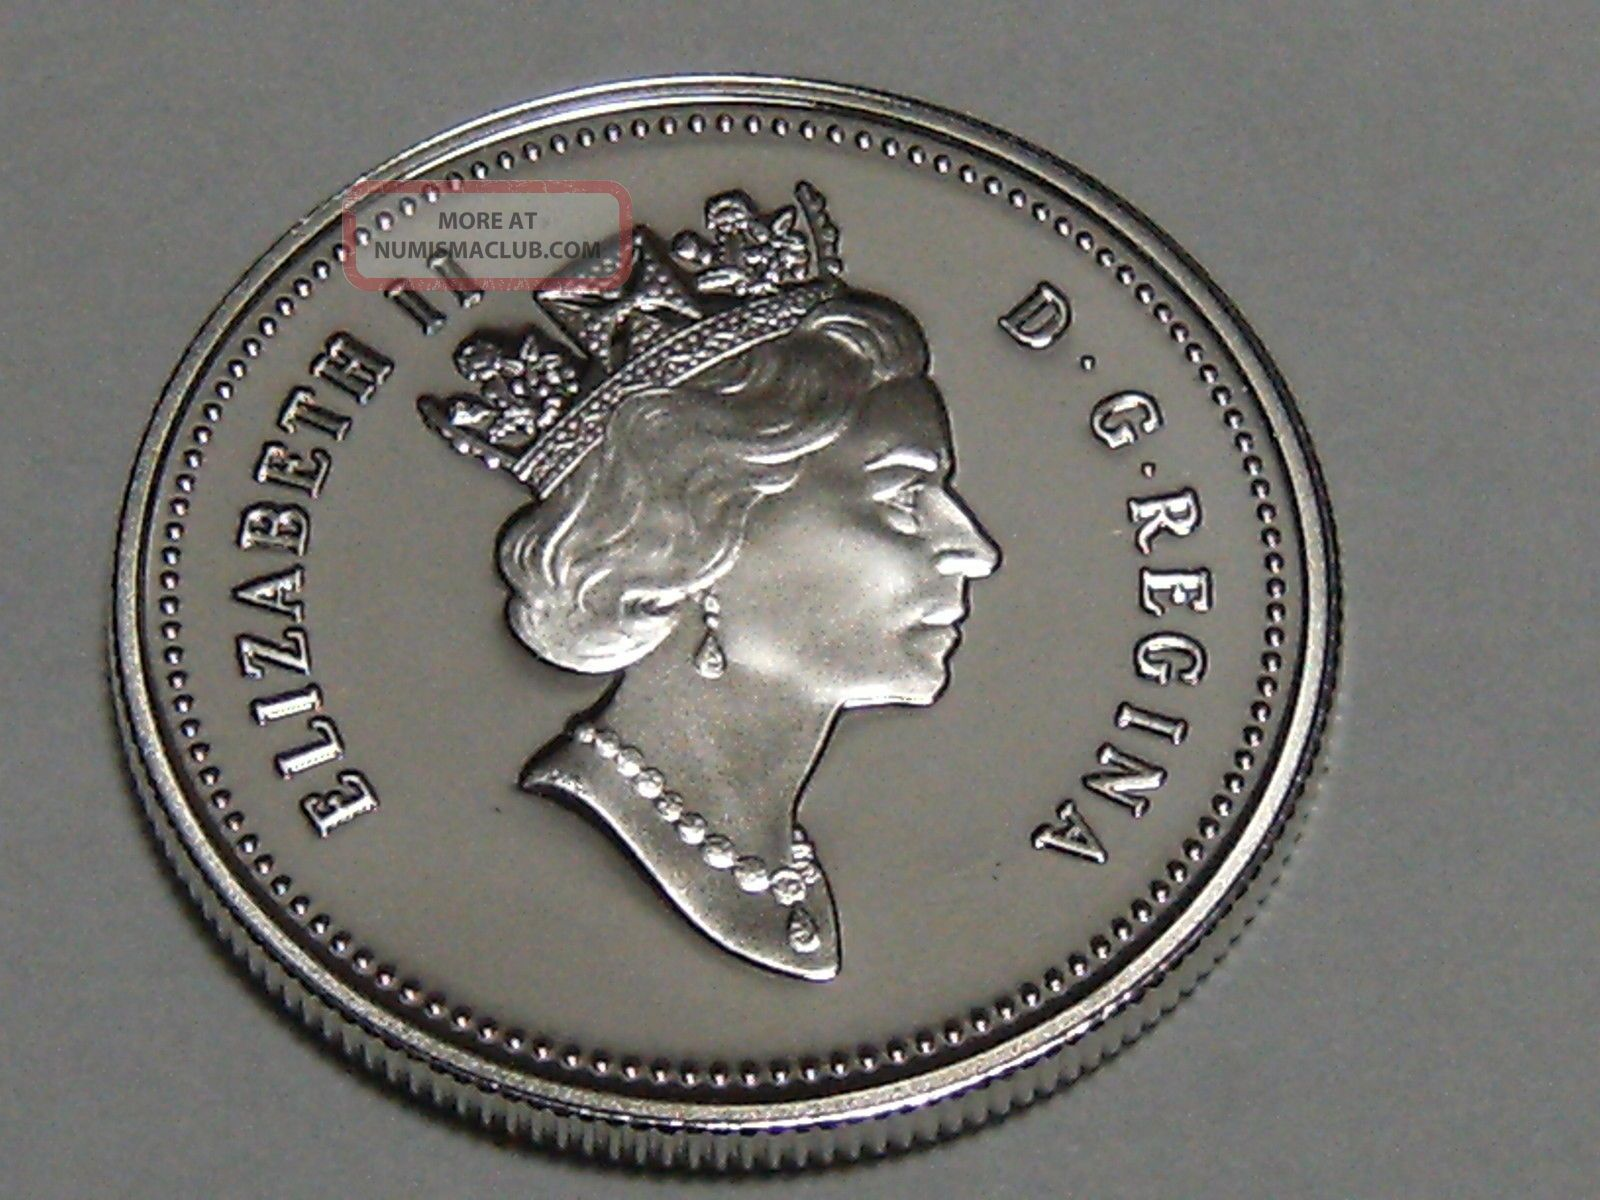 1999 Canadian Fifty Cent Coin 925 Silver Proof 9840